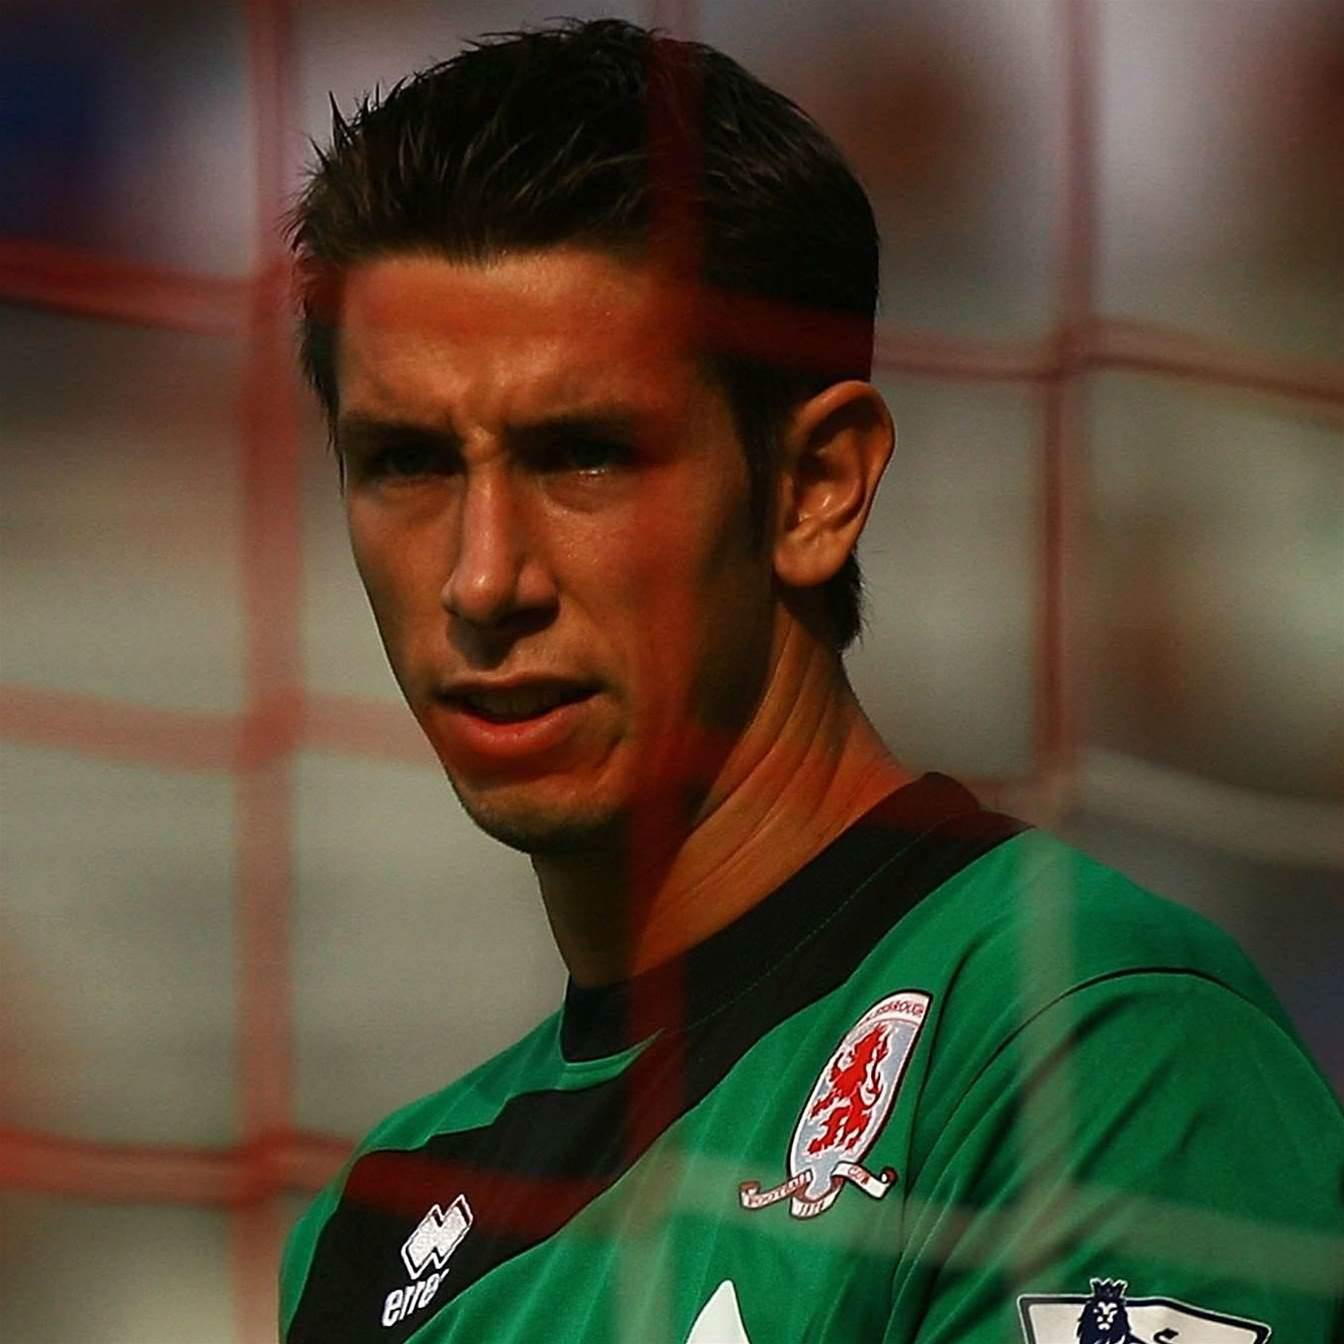 Boro To Replace Schwarzer At Last